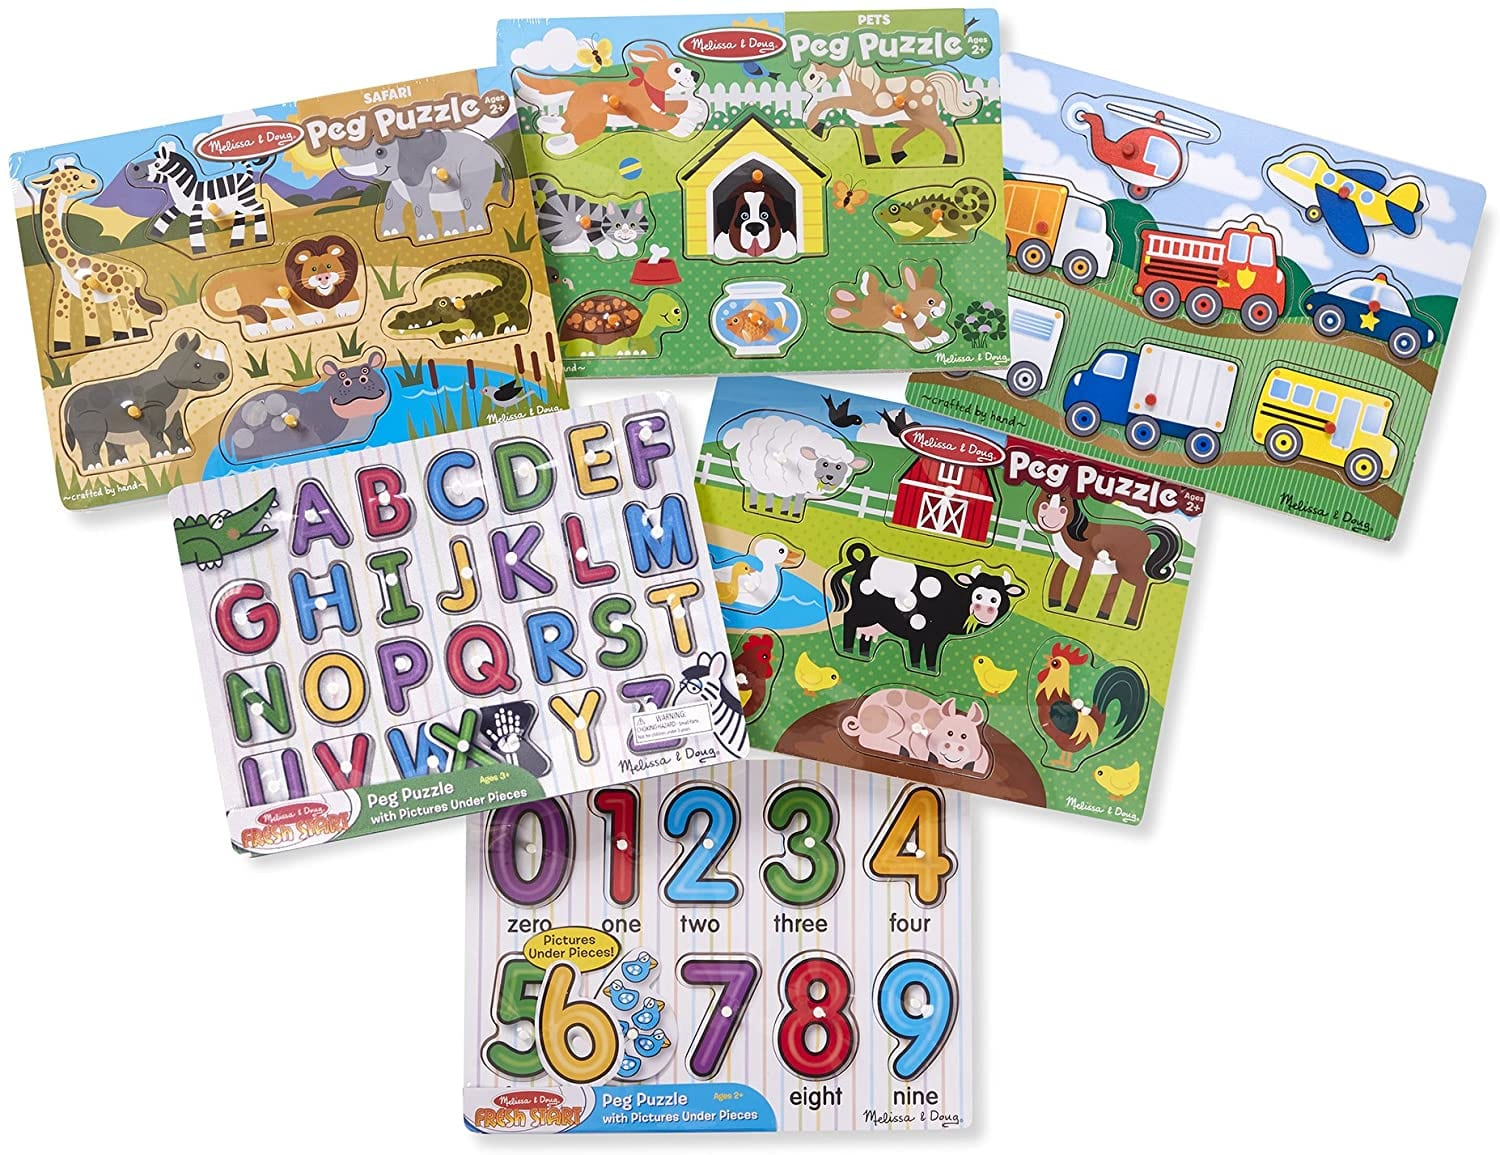 6-Pack Melissa & Doug Wooden Peg Puzzles $25, 100-Piece Melissa & Doug Magnetivity Magnetic Building Play Set $38.90 + Free Shipping w/ Prime or on $25+